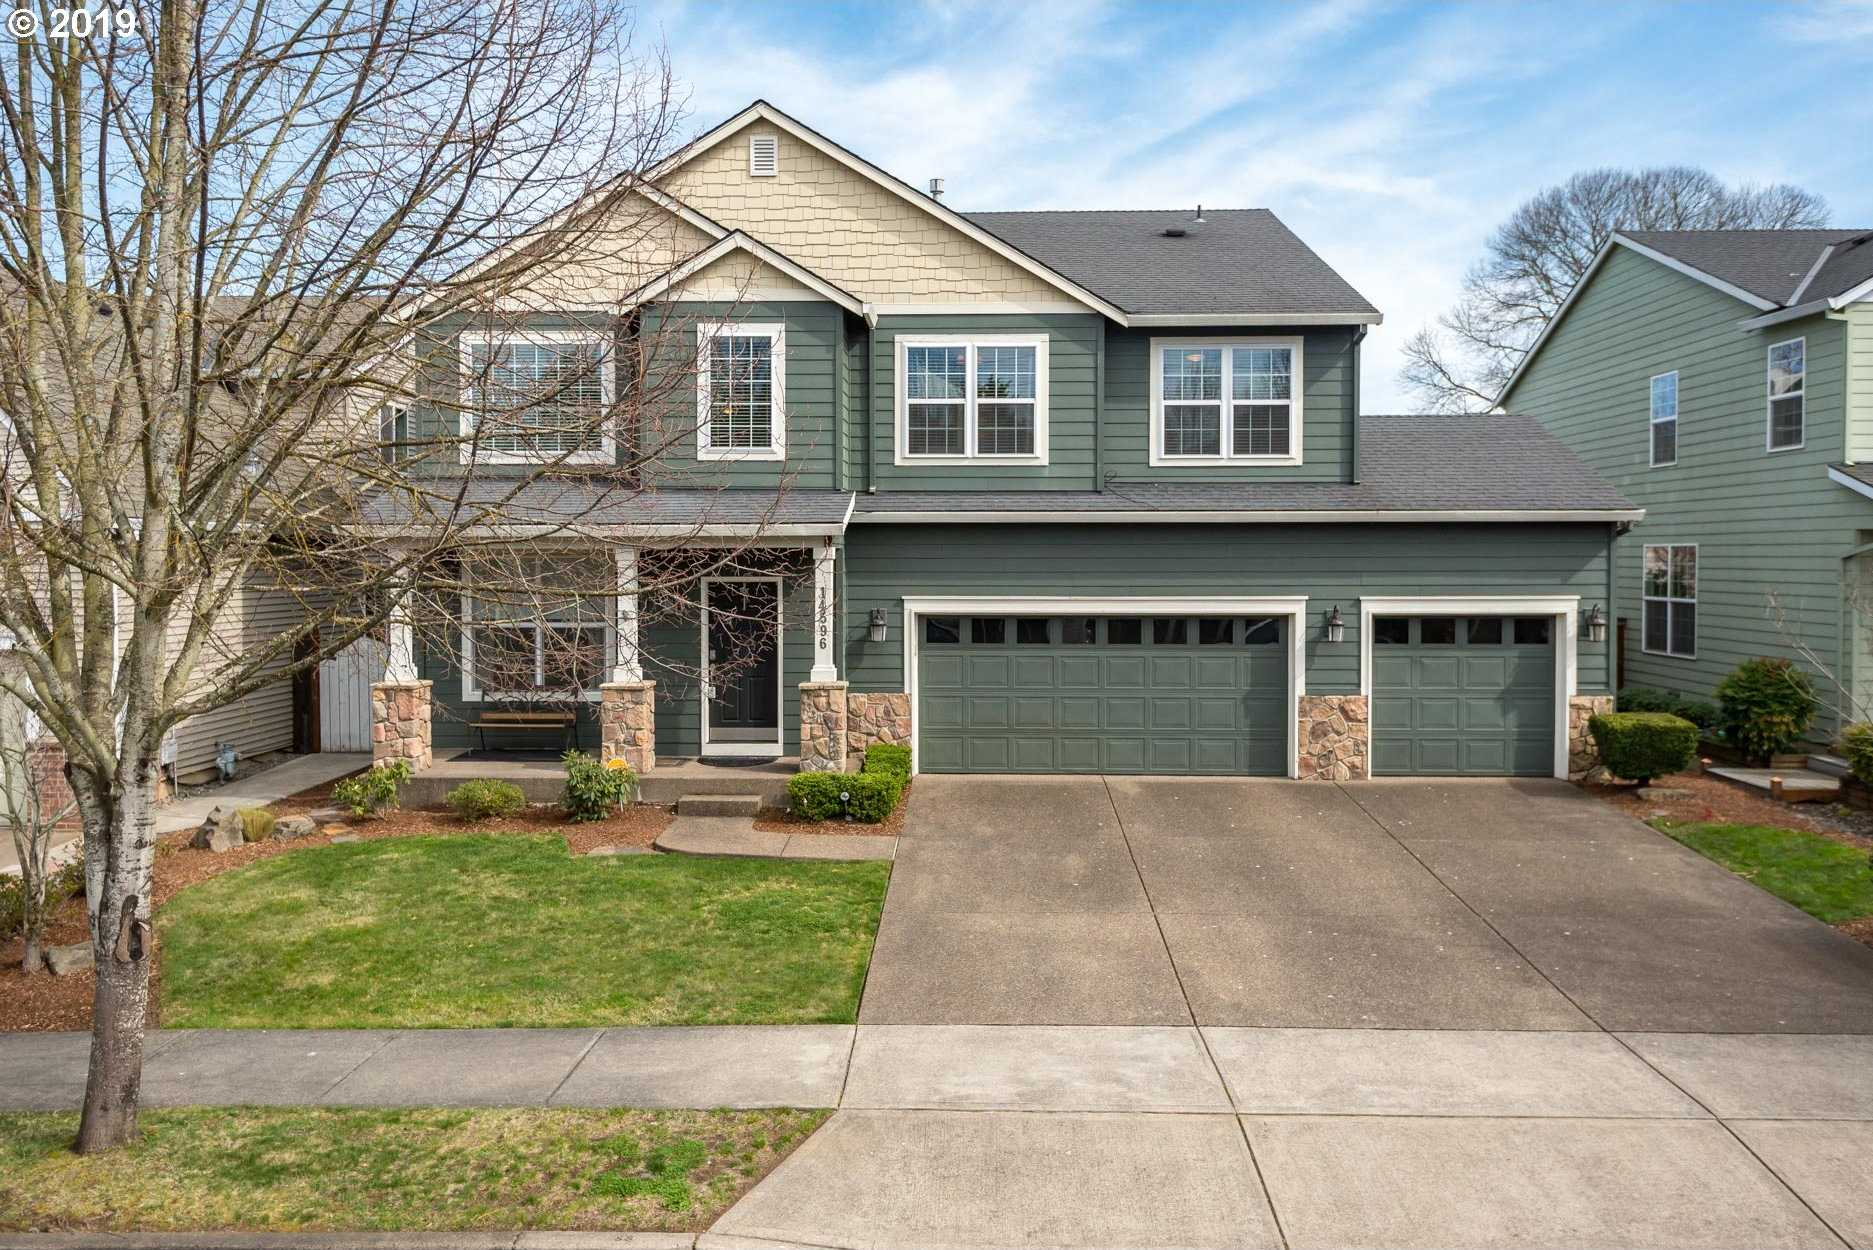 $519,900 - 4Br/3Ba -  for Sale in Milwaukie